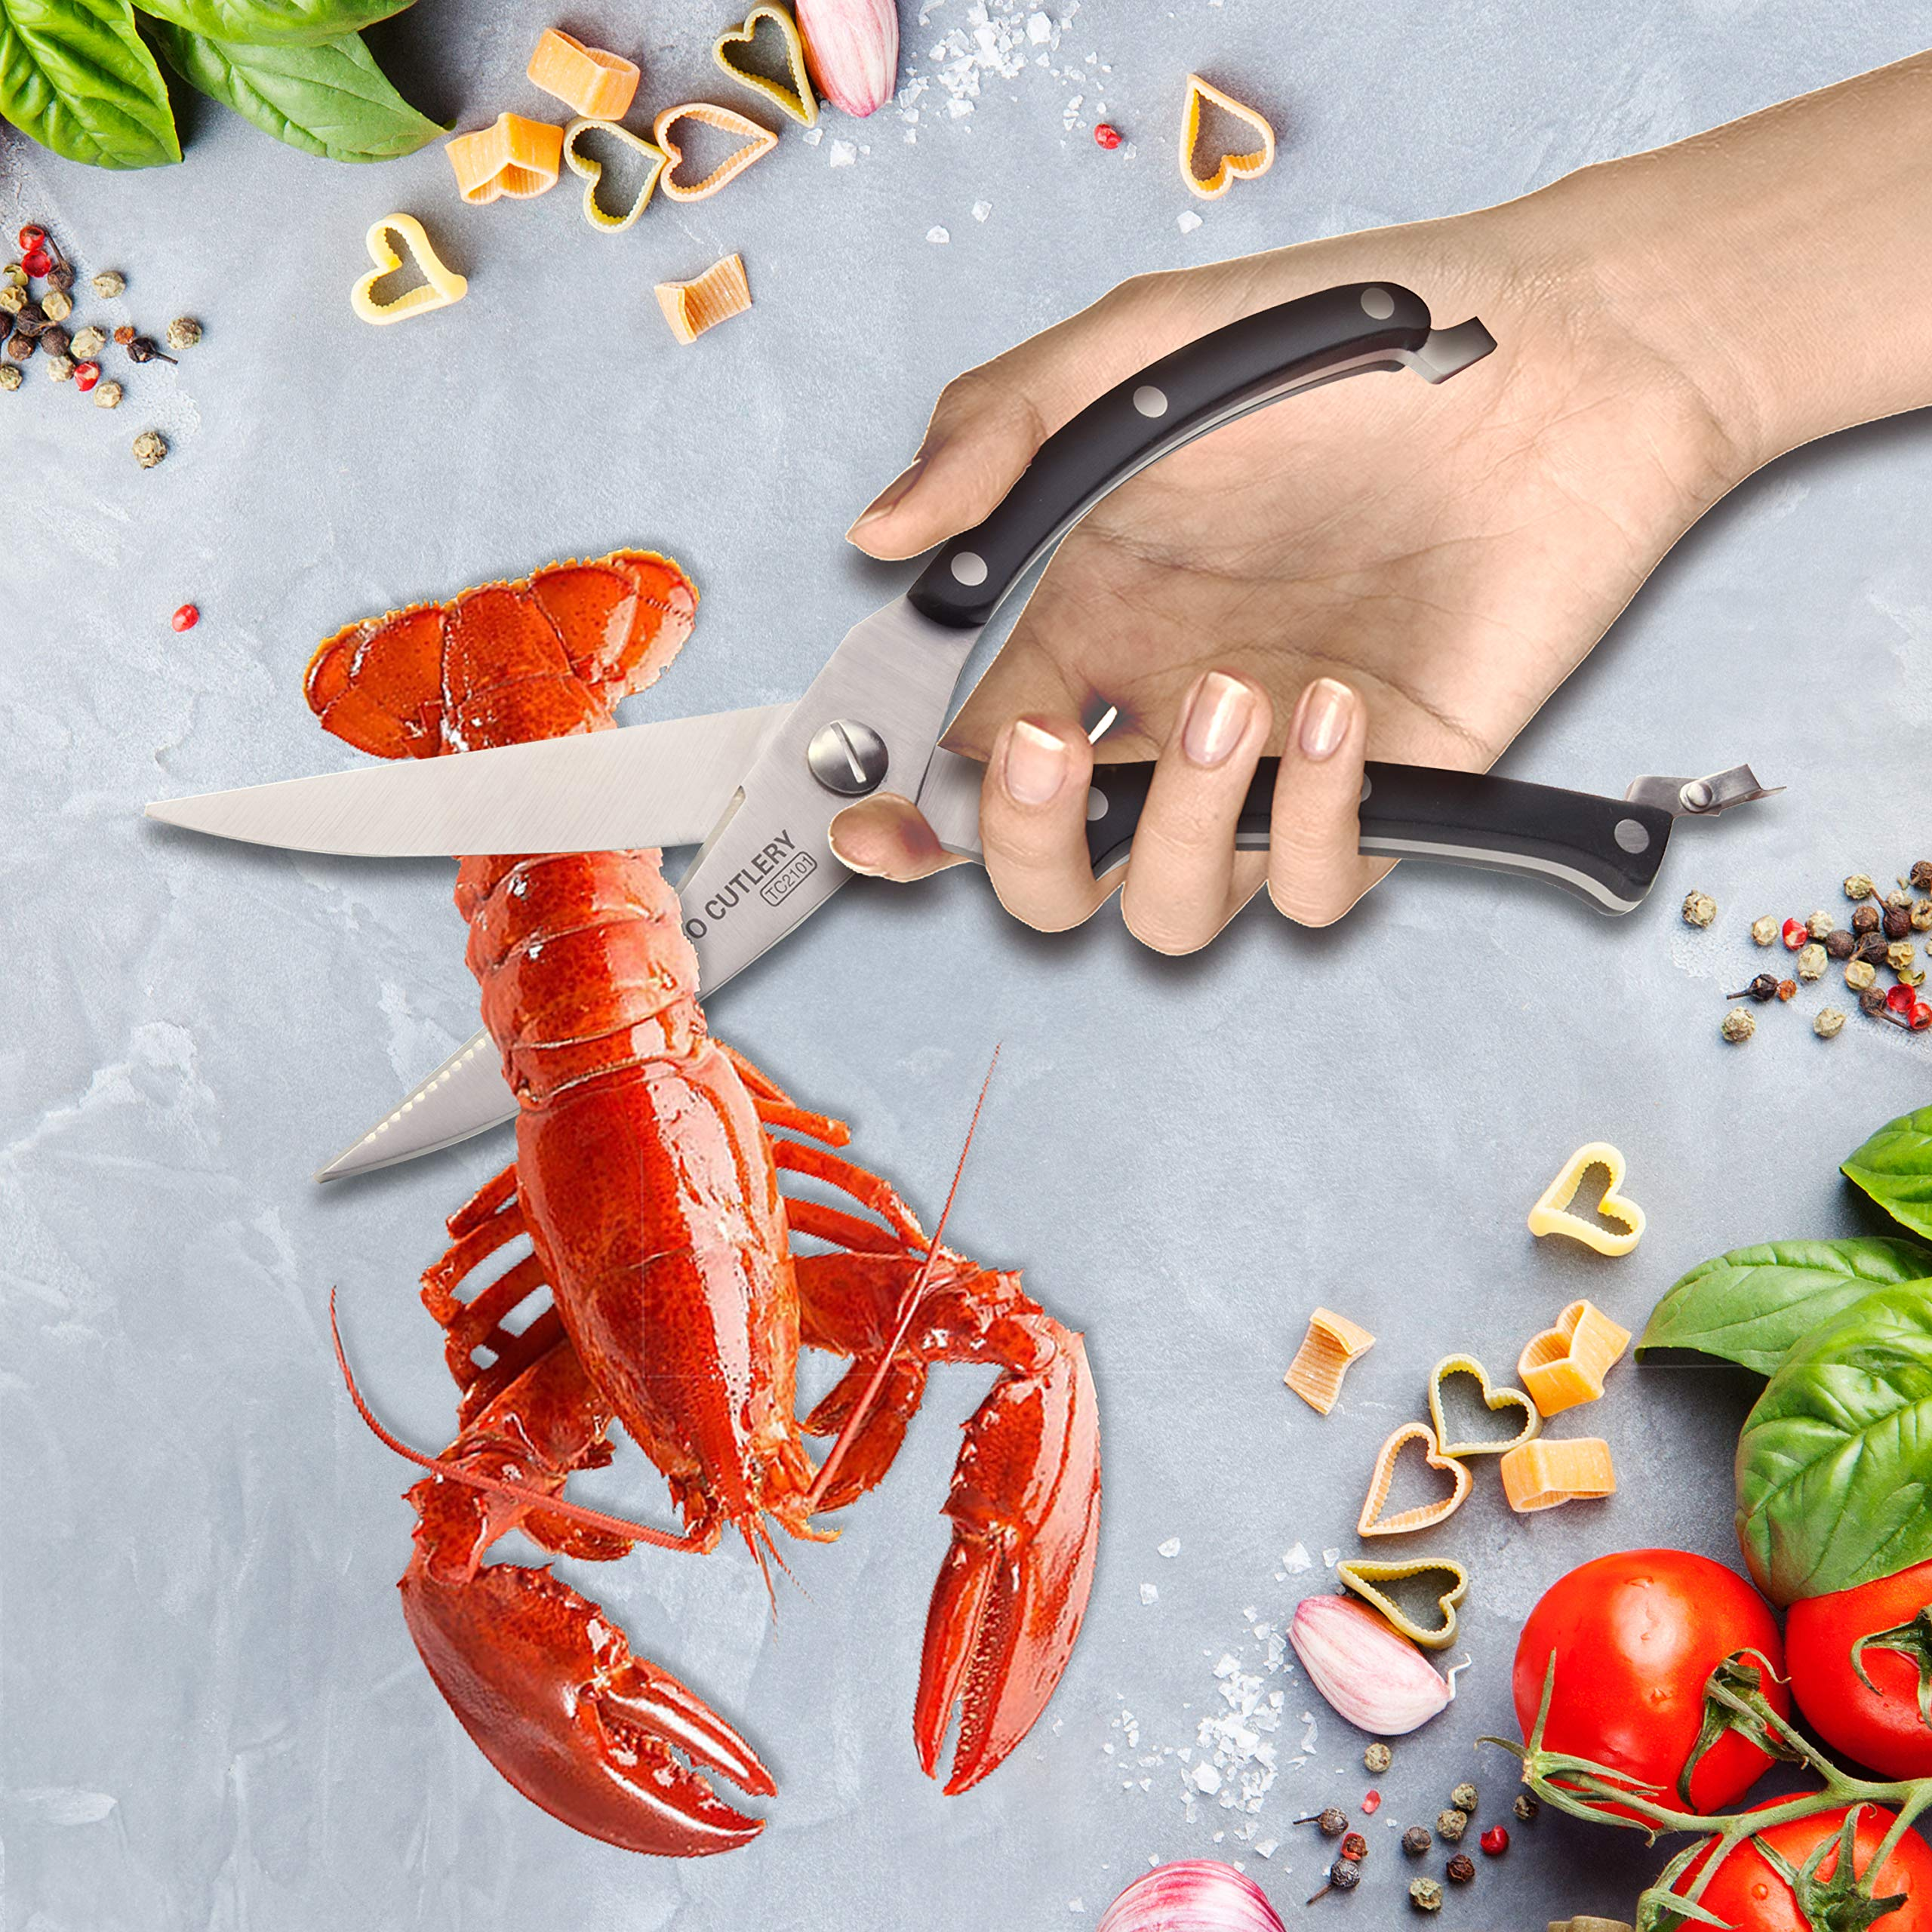 WALLOP Kitchen Poultry Shears Heavy Duty Scissors Excellent for Cutting Chicken Fish Bone Beef Meat Cutter Knife, Clever Smart Food Cutter,Multi-funtional Dishwasher Safe Cooking Utensil